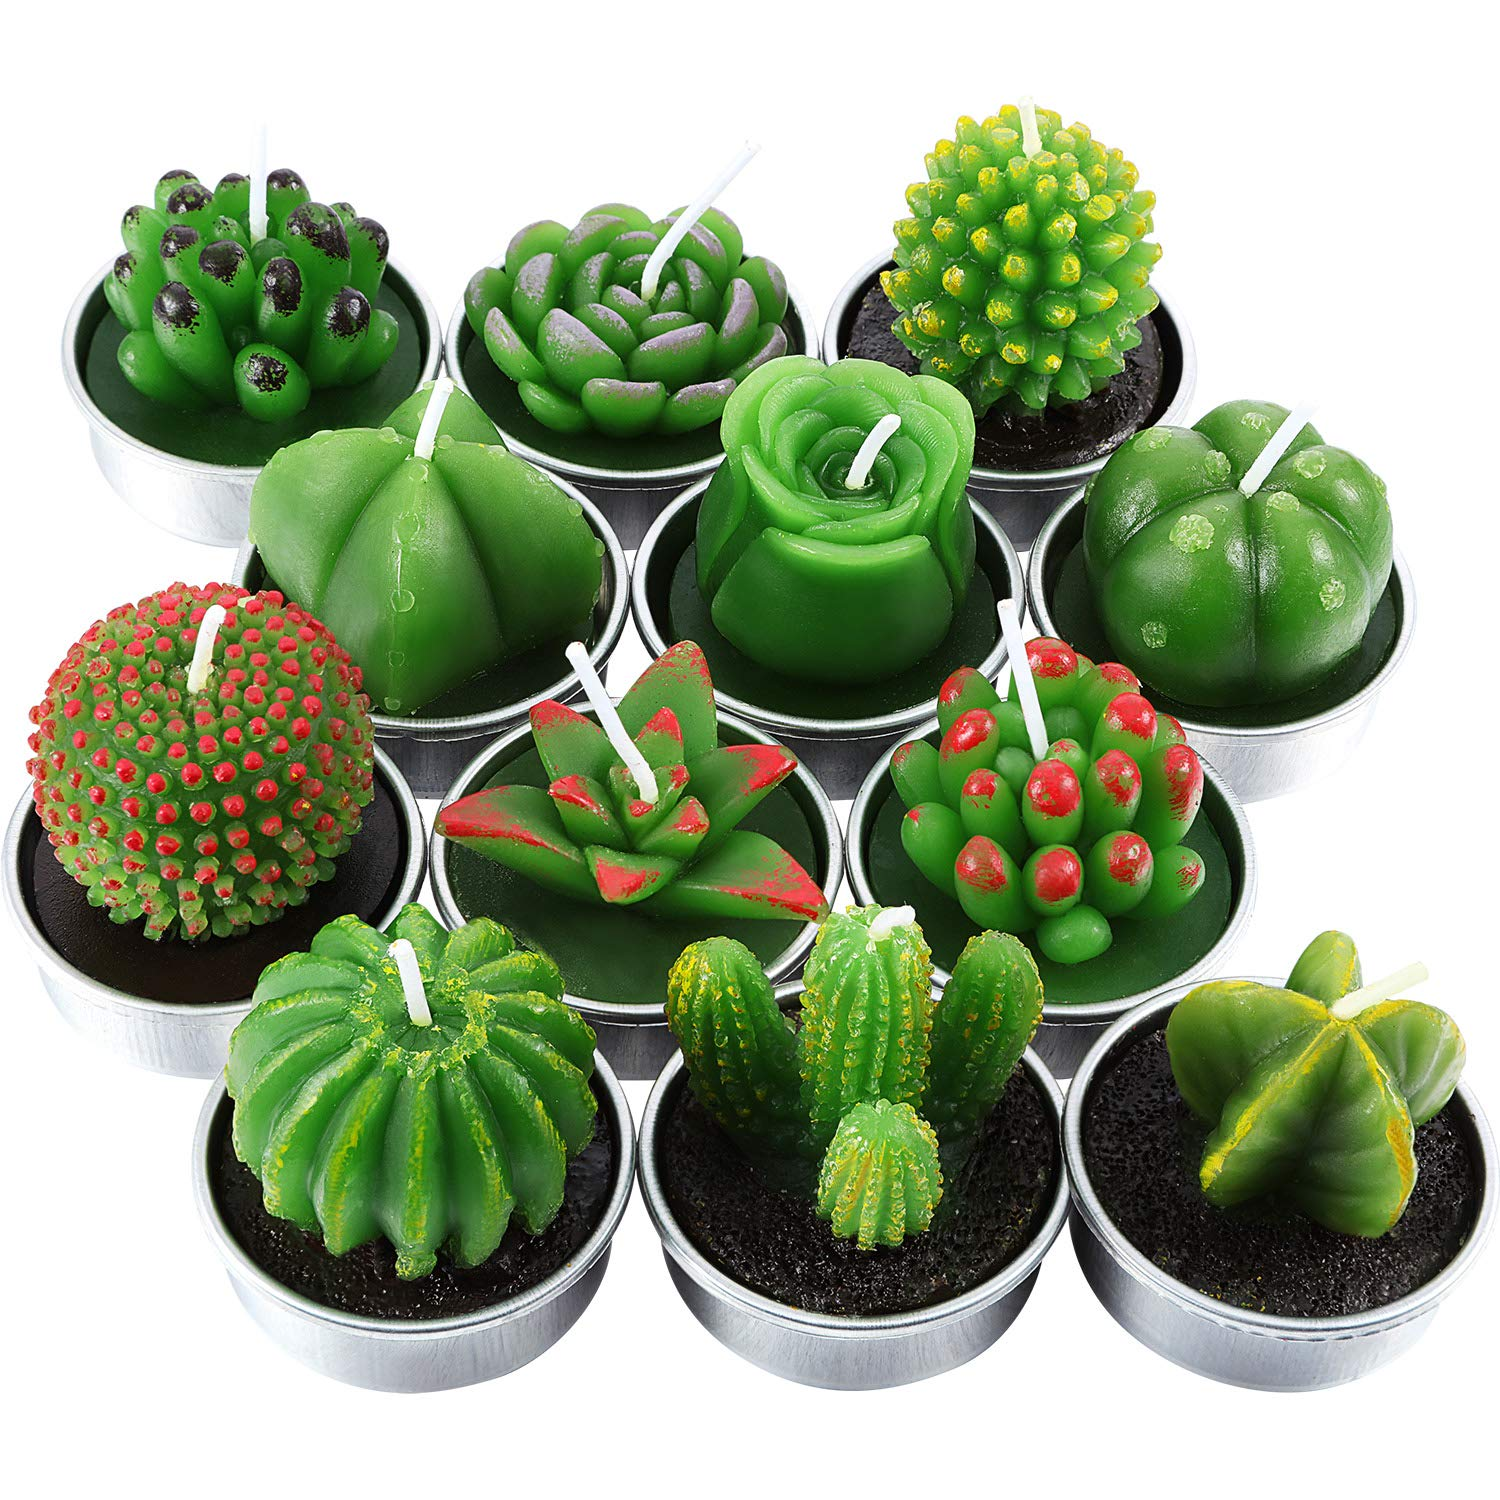 Tatuo 12 Pieces Cactus Candles Succulent Cactus Rose Tealight Handmade Candles for Teatime Spa Home Party Wedding Decoration Gifts by Tatuo (Image #2)